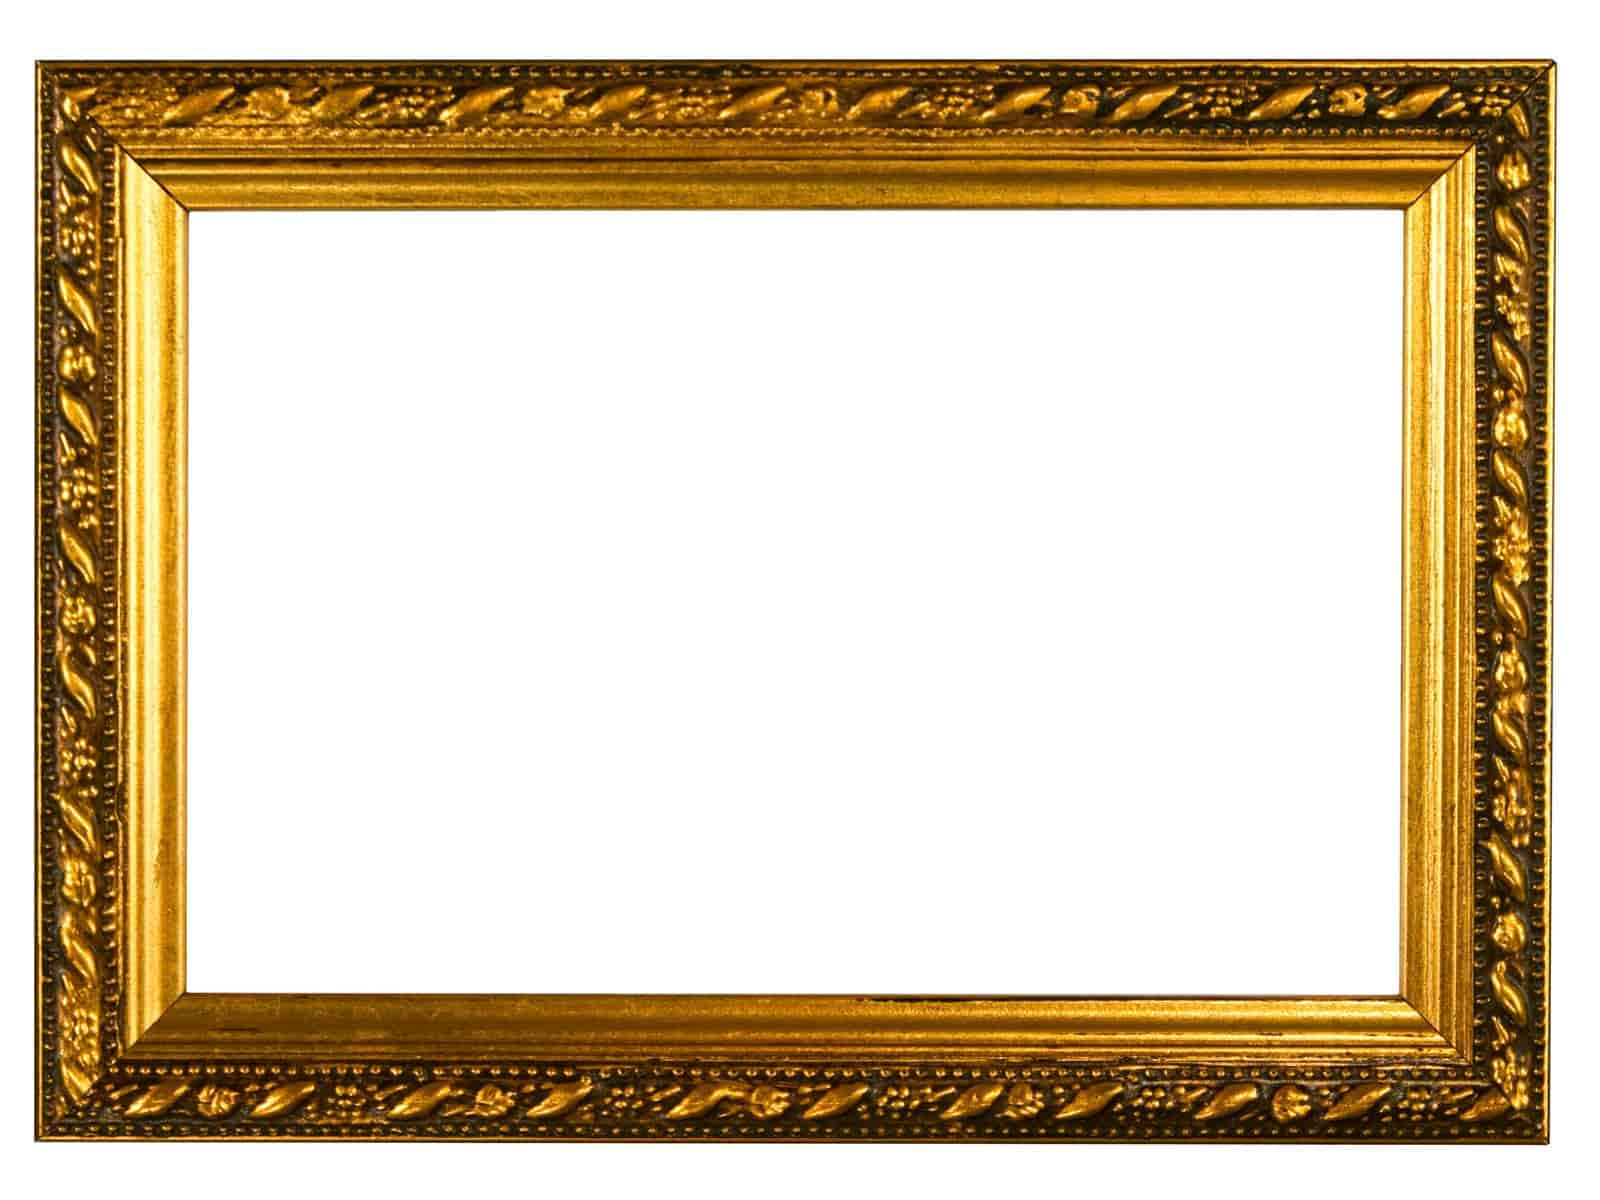 Magic Frames, Palarivattom - Photo Frame Dealers in Ernakulam - Justdial